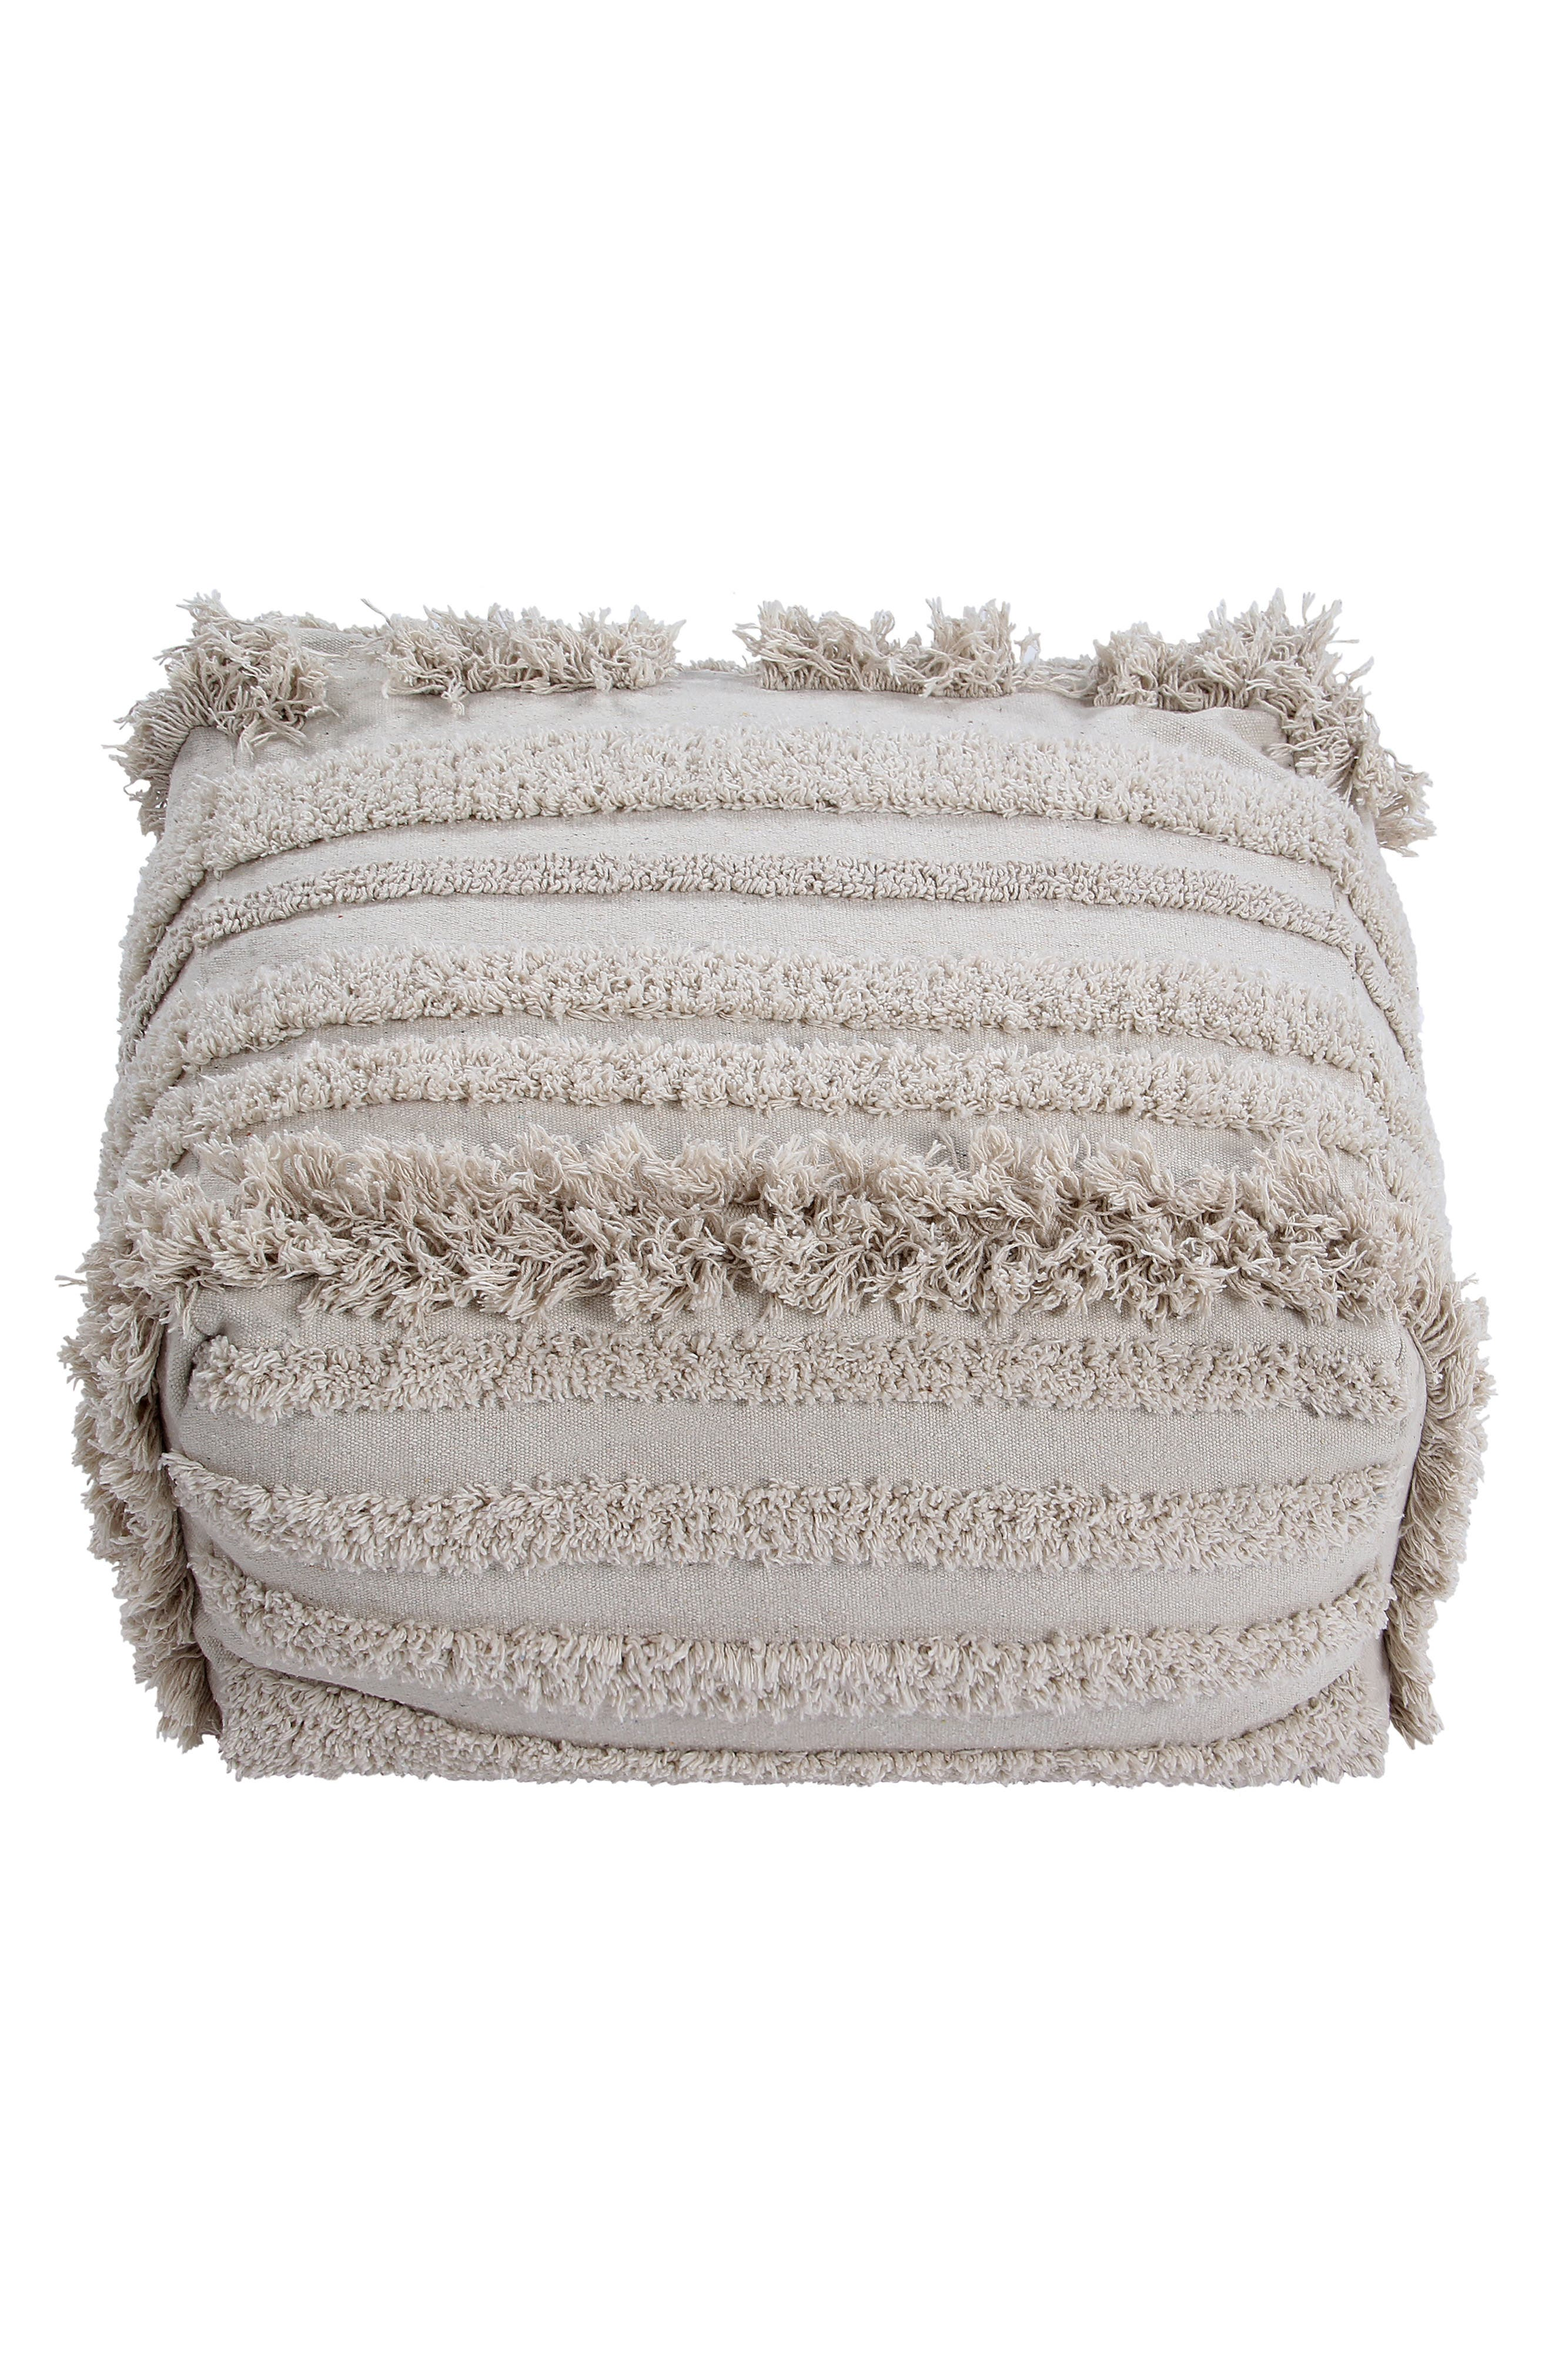 Made with recycled cotton and rich with touchable texture, this comfortable cushion makes a beautiful accent and provides comfy seating. Style Name: Lorena Canals Air Pouf. Style Number: 5869430. Available in stores.